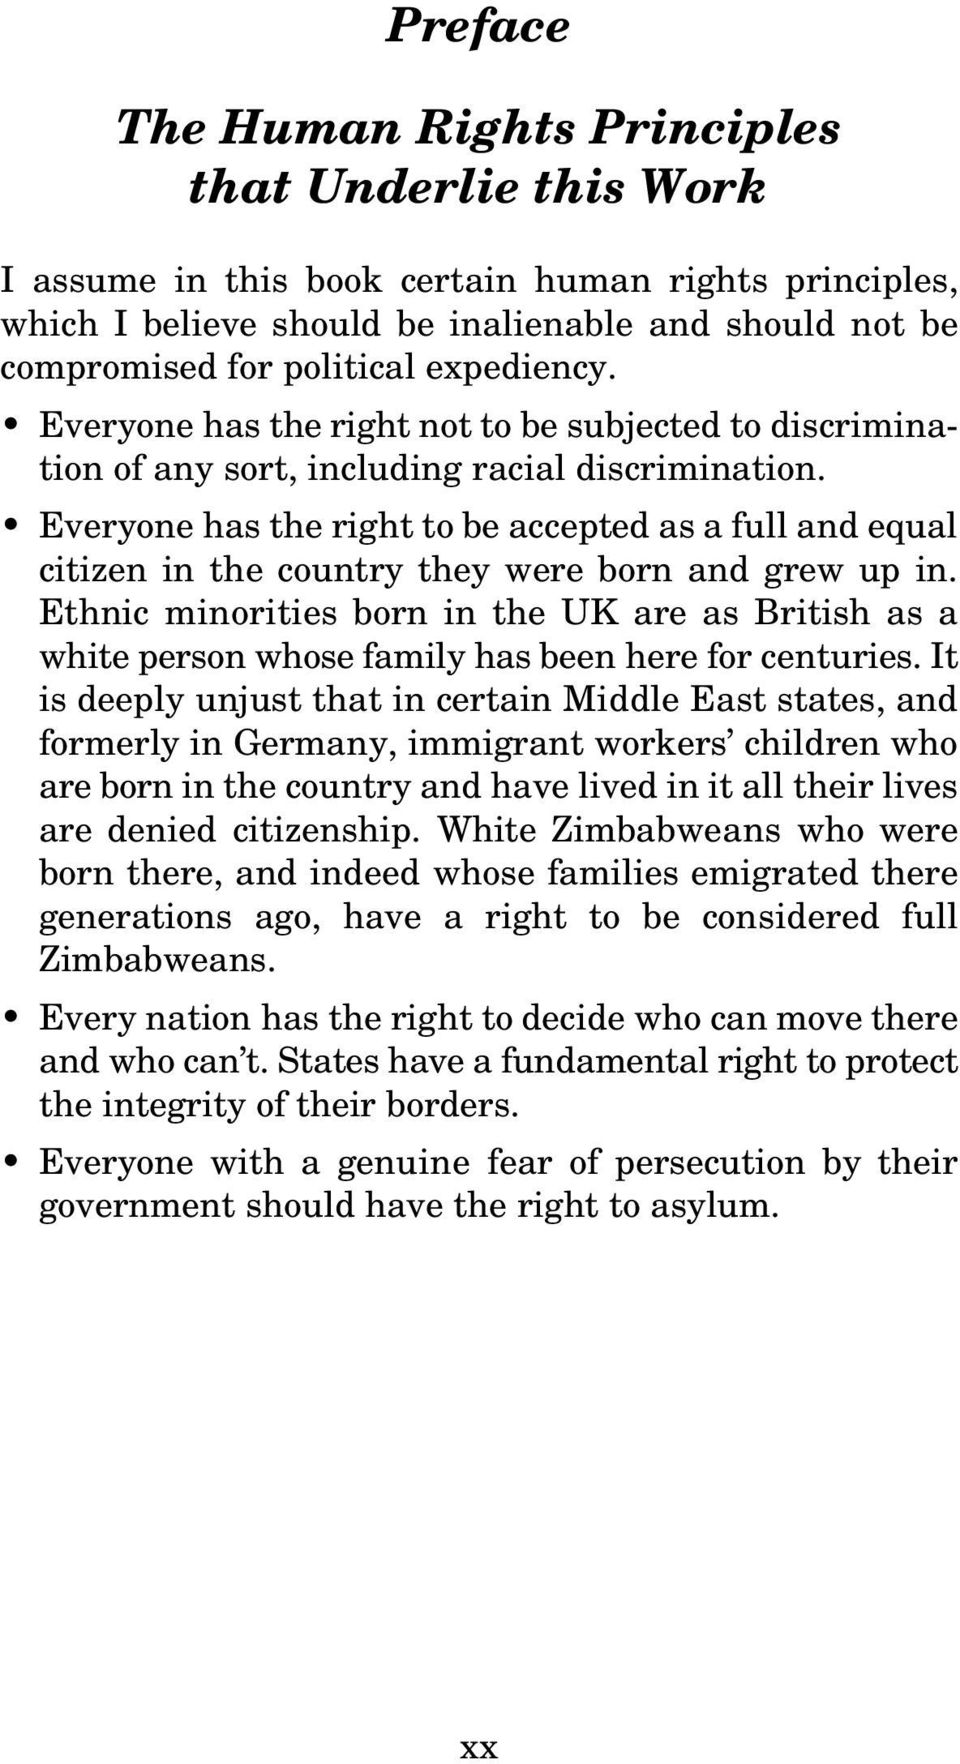 Everyone has the right to be accepted as a full and equal citizen in the country they were born and grew up in.